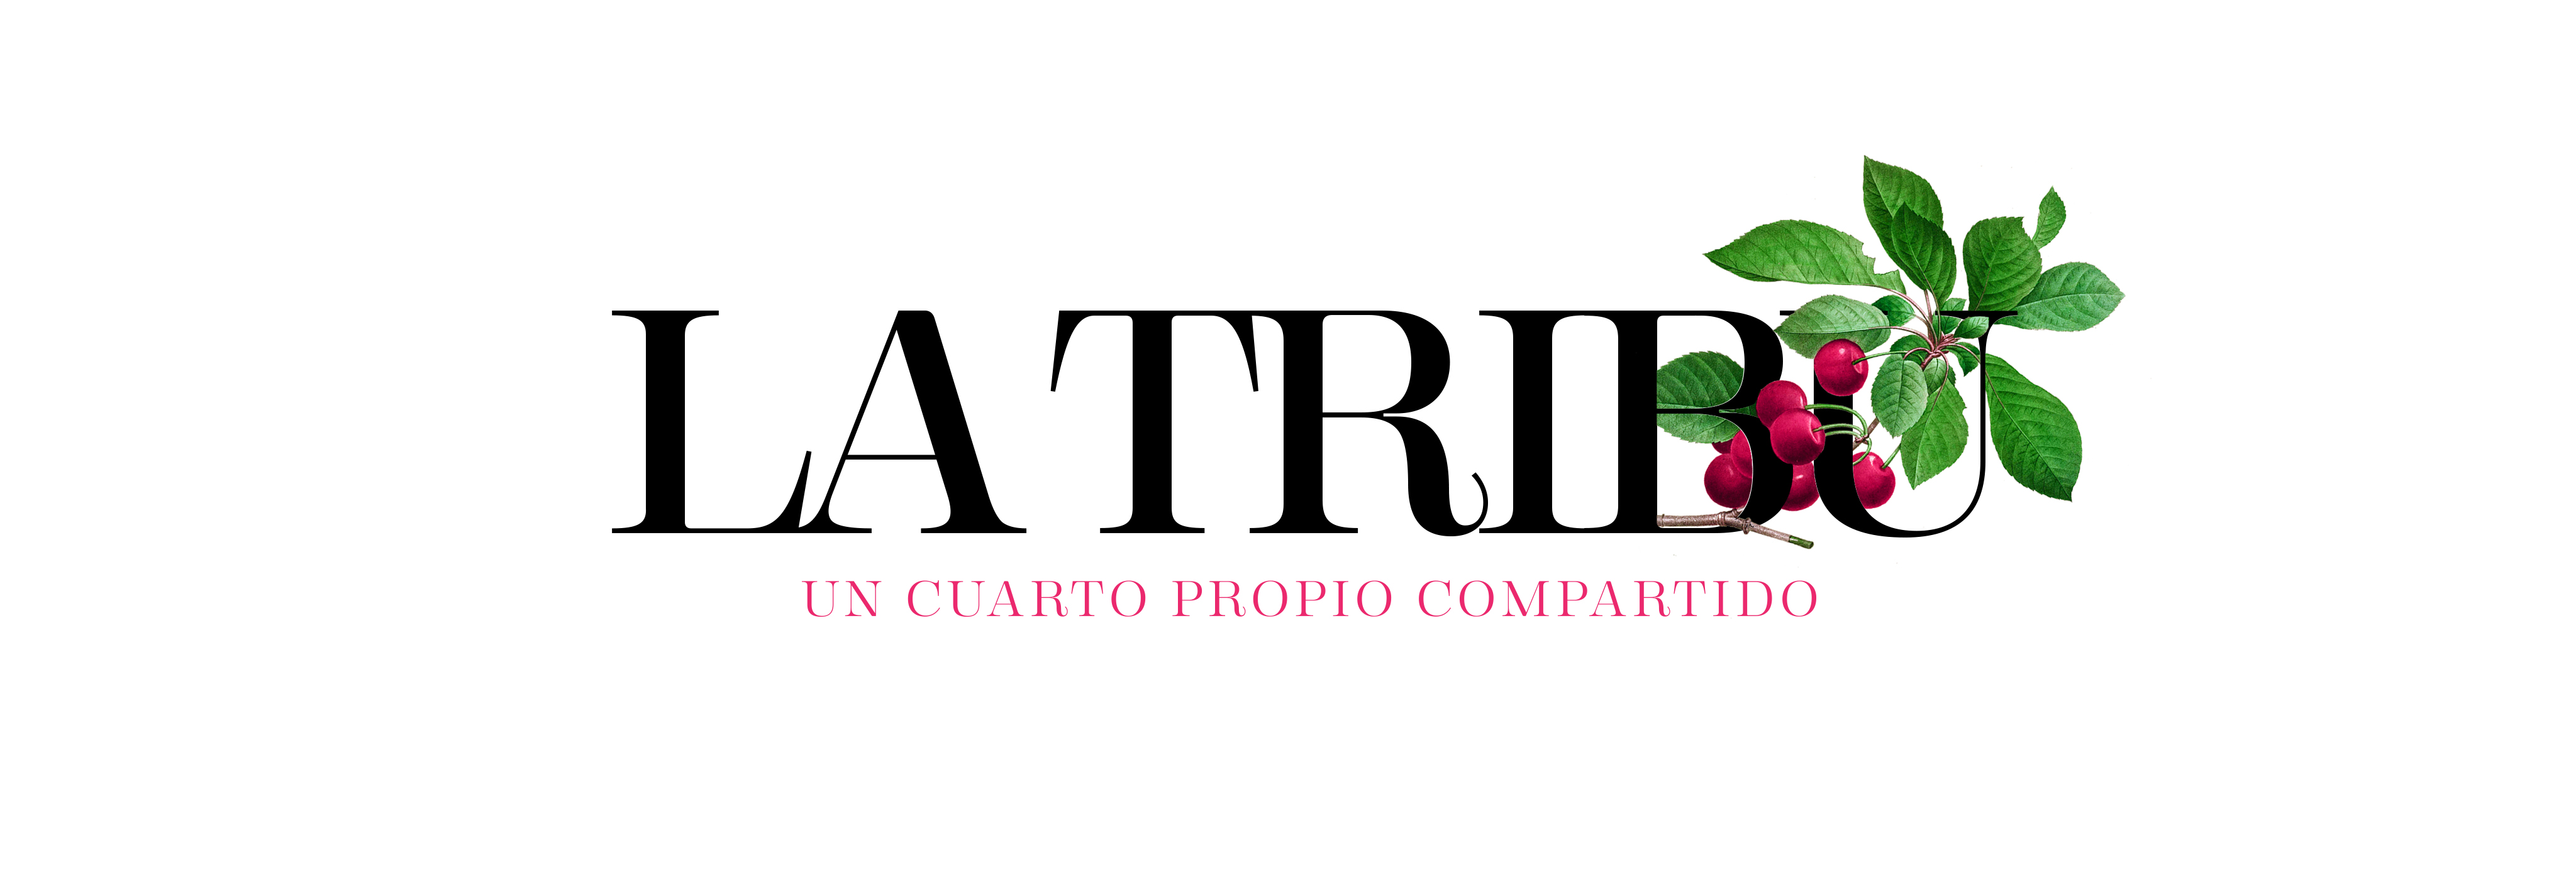 La tribu - un cuarto propio compartido